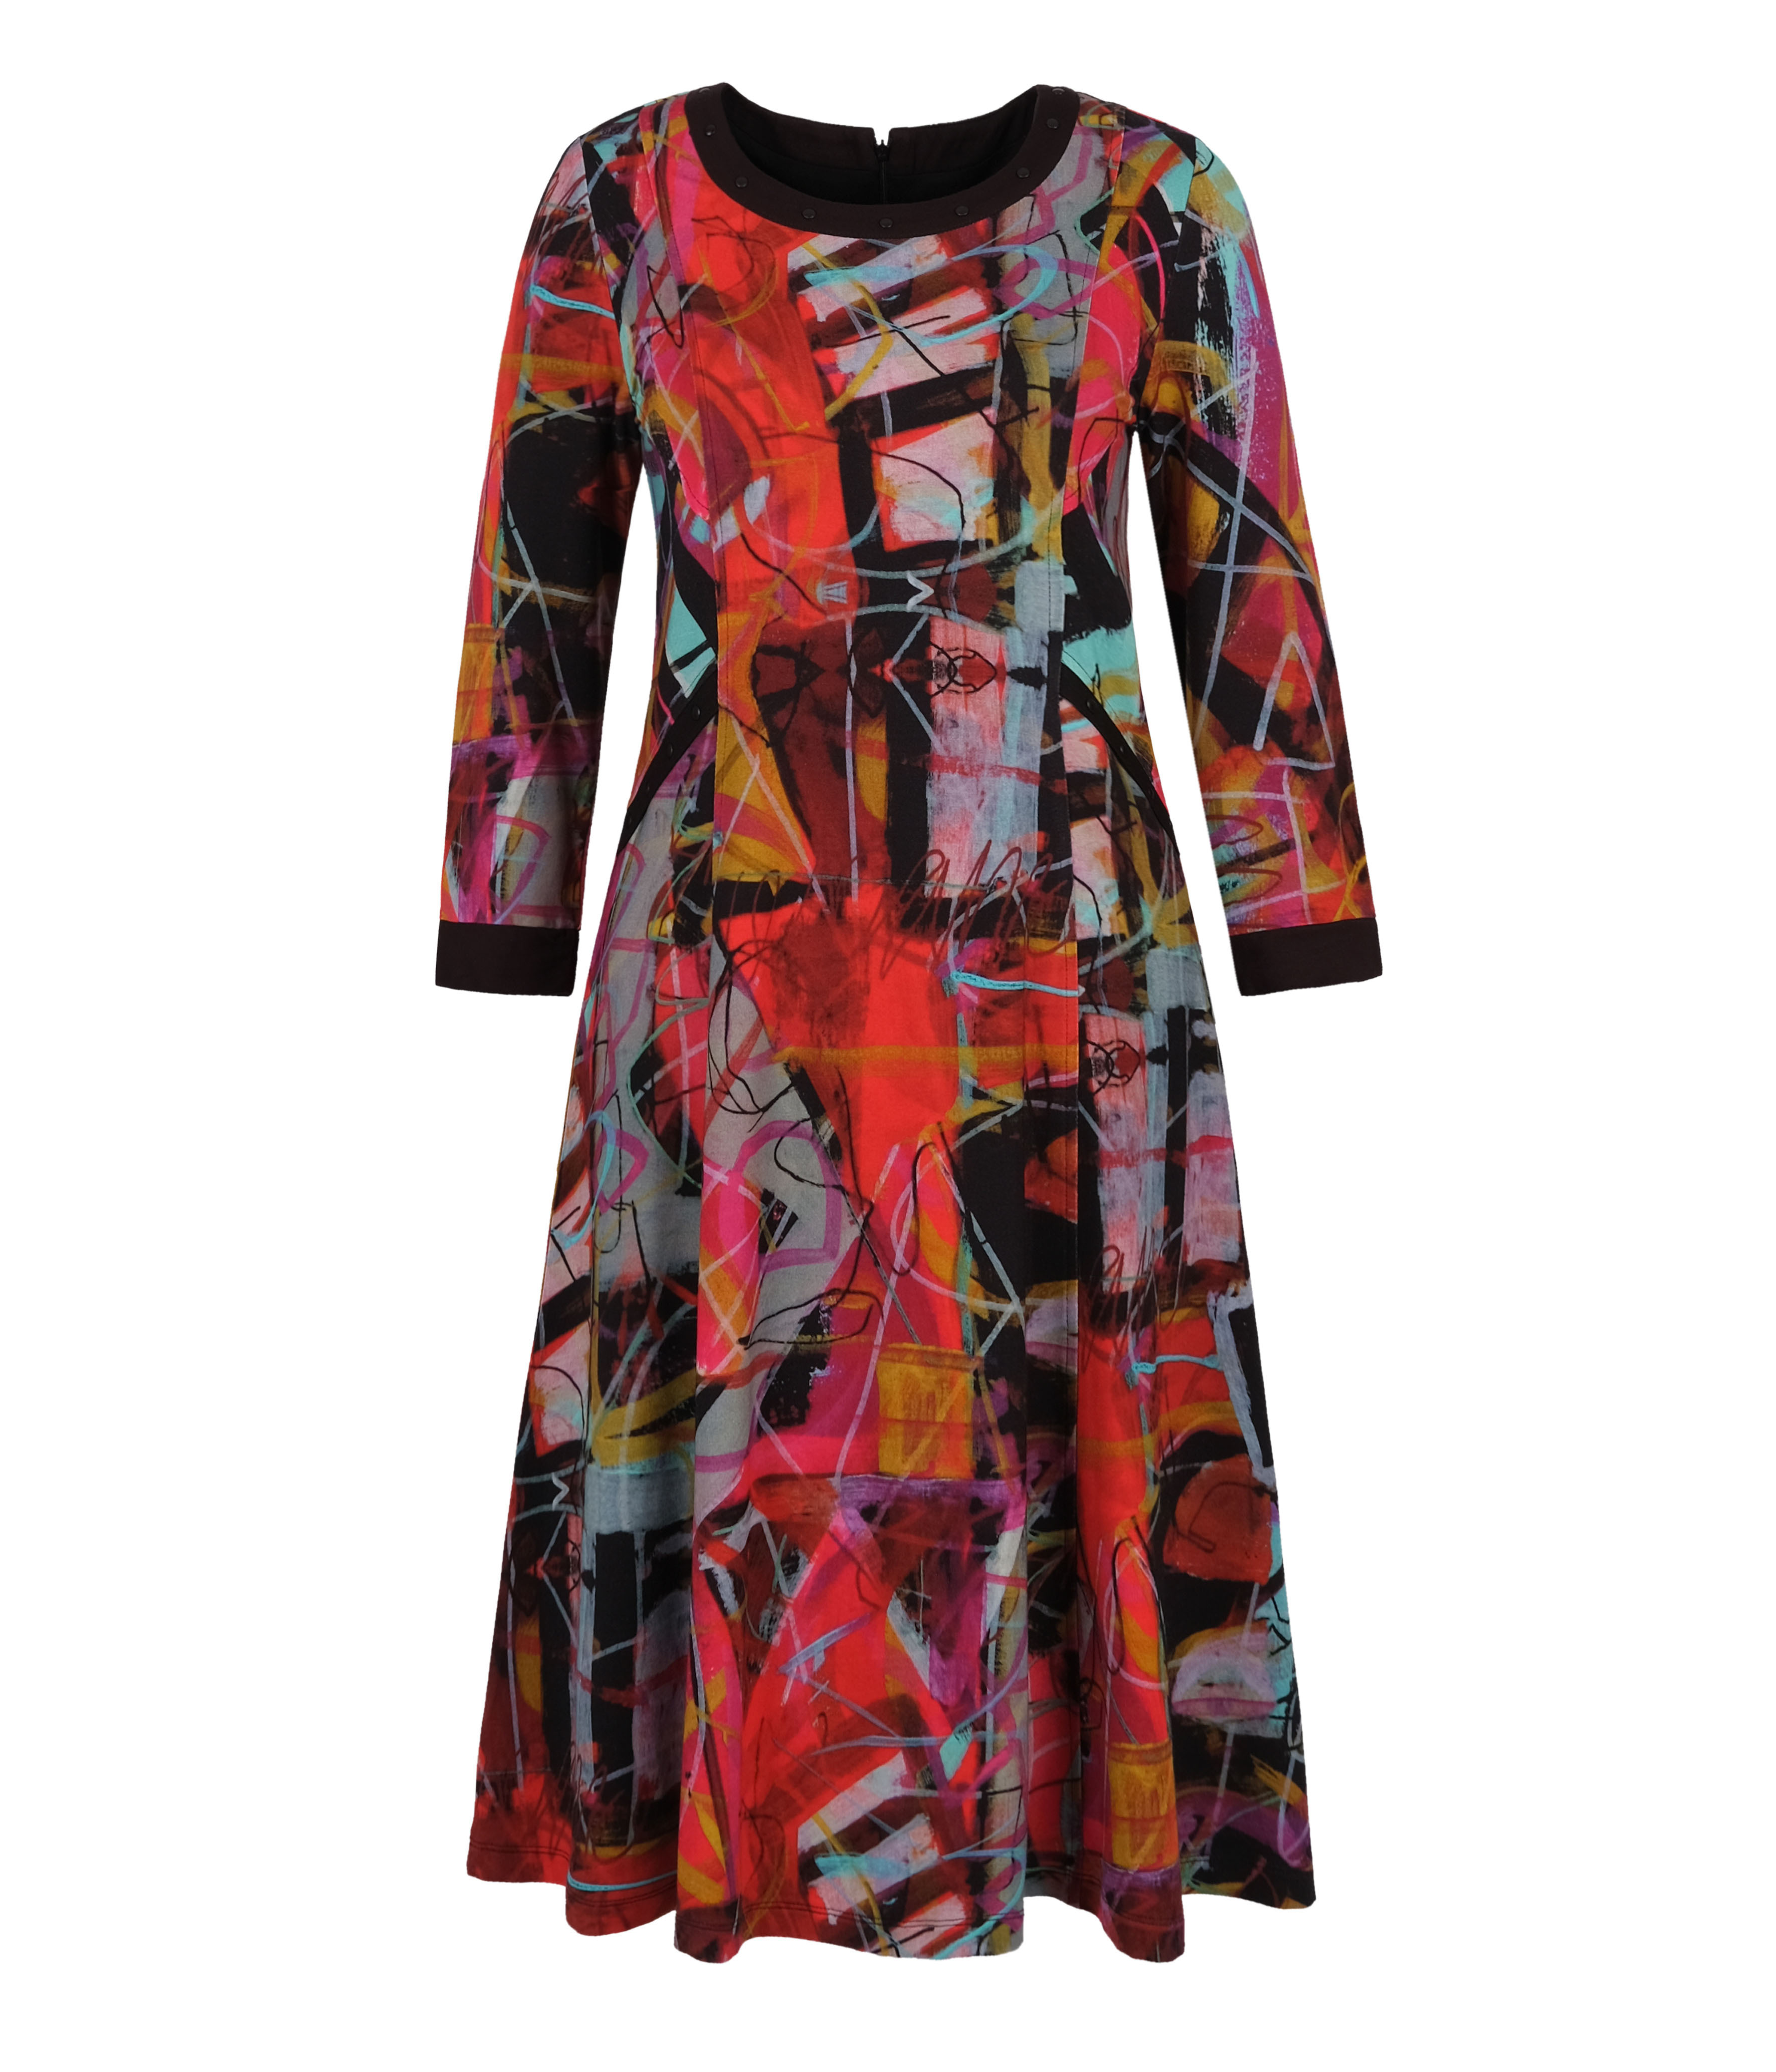 Simply Art Dolcezza: Red 3 Graffiti Abstract Art Flared Dress (2 Left!)